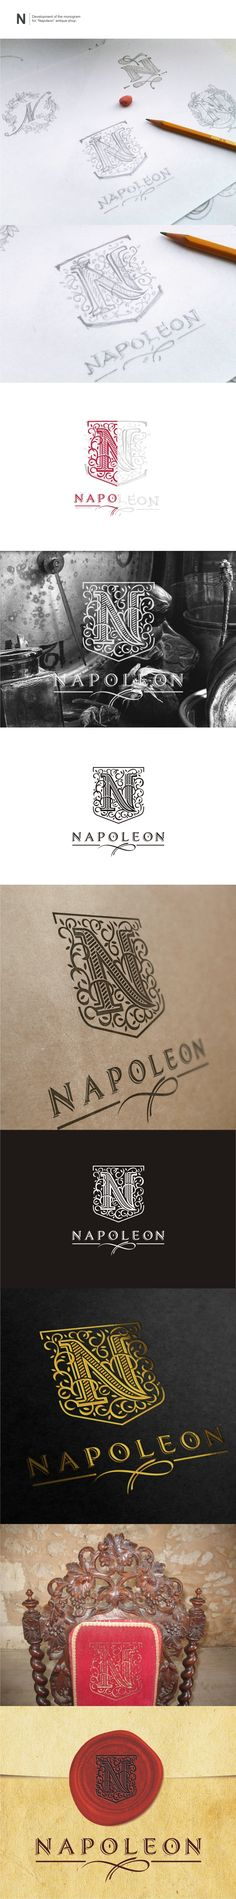 """Napoleon"" antique shop. on Behance"